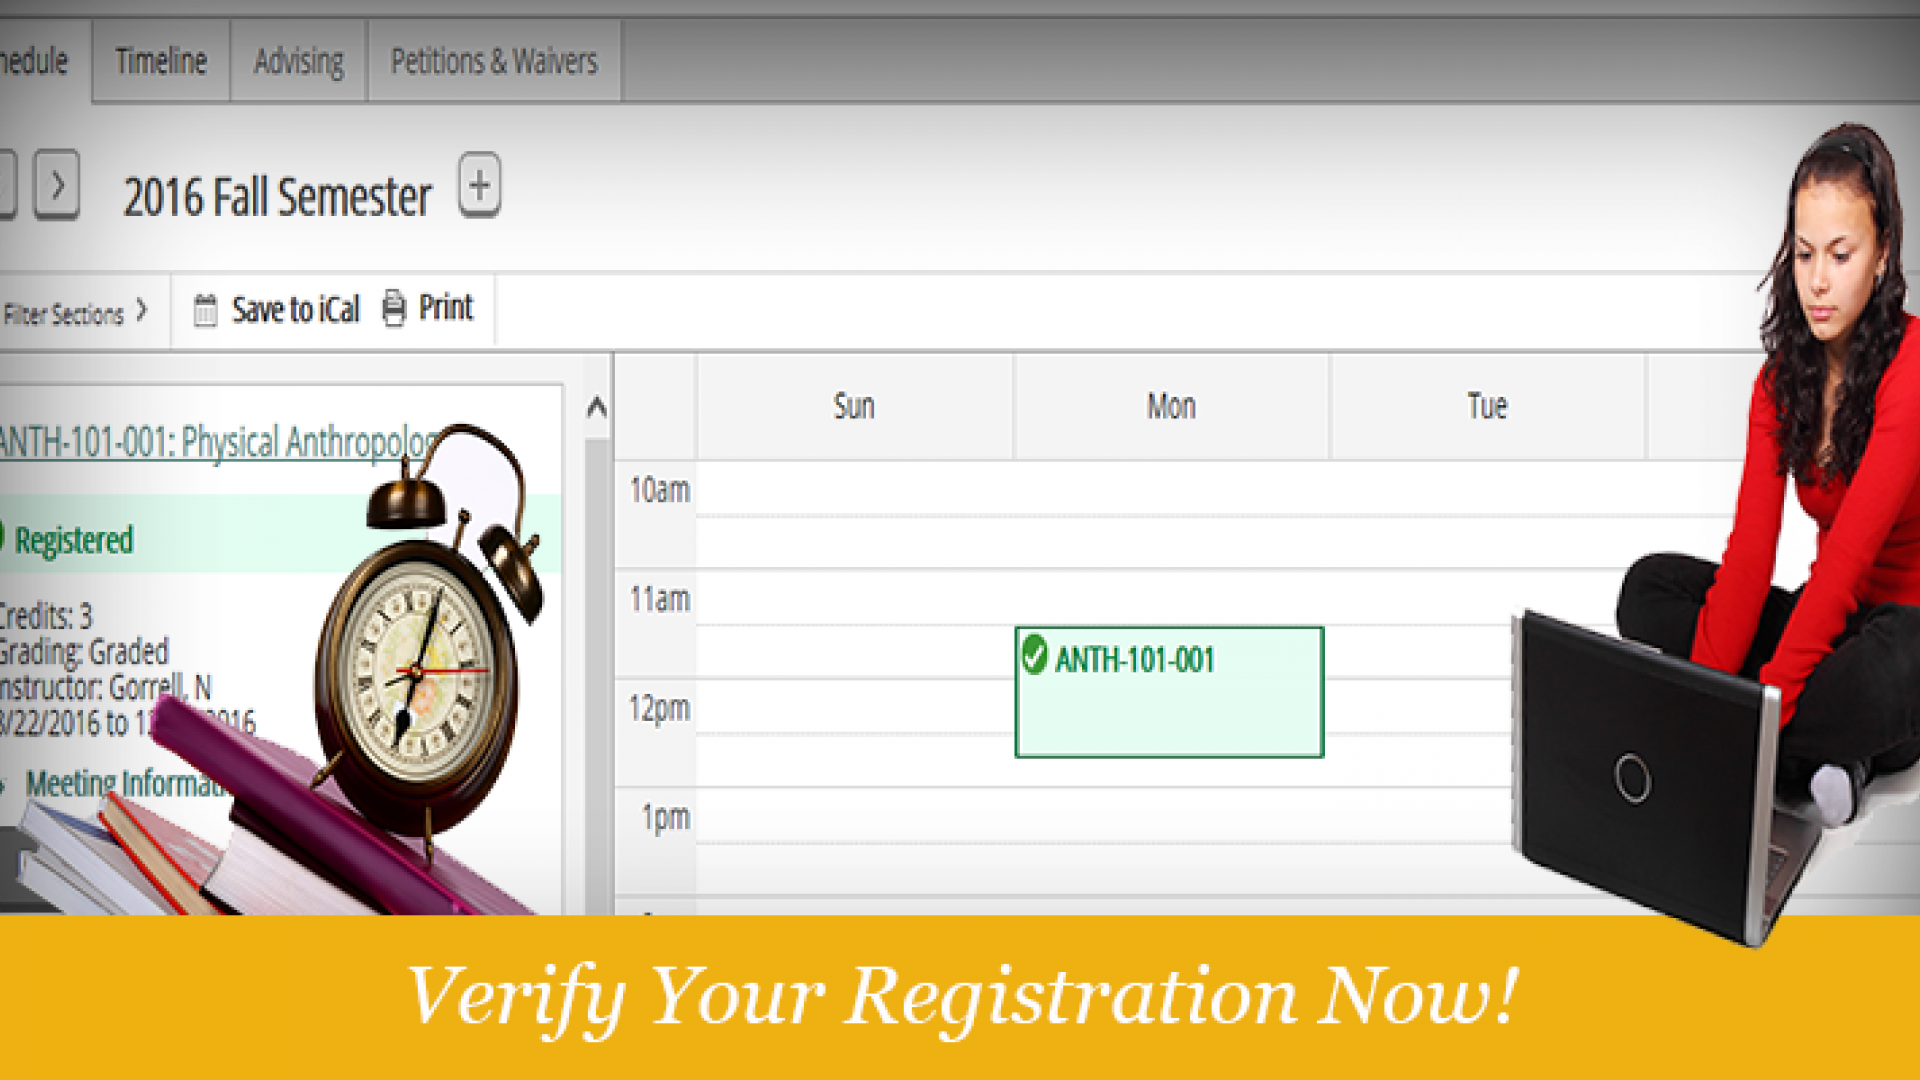 Validate you are Registered in Student Planning